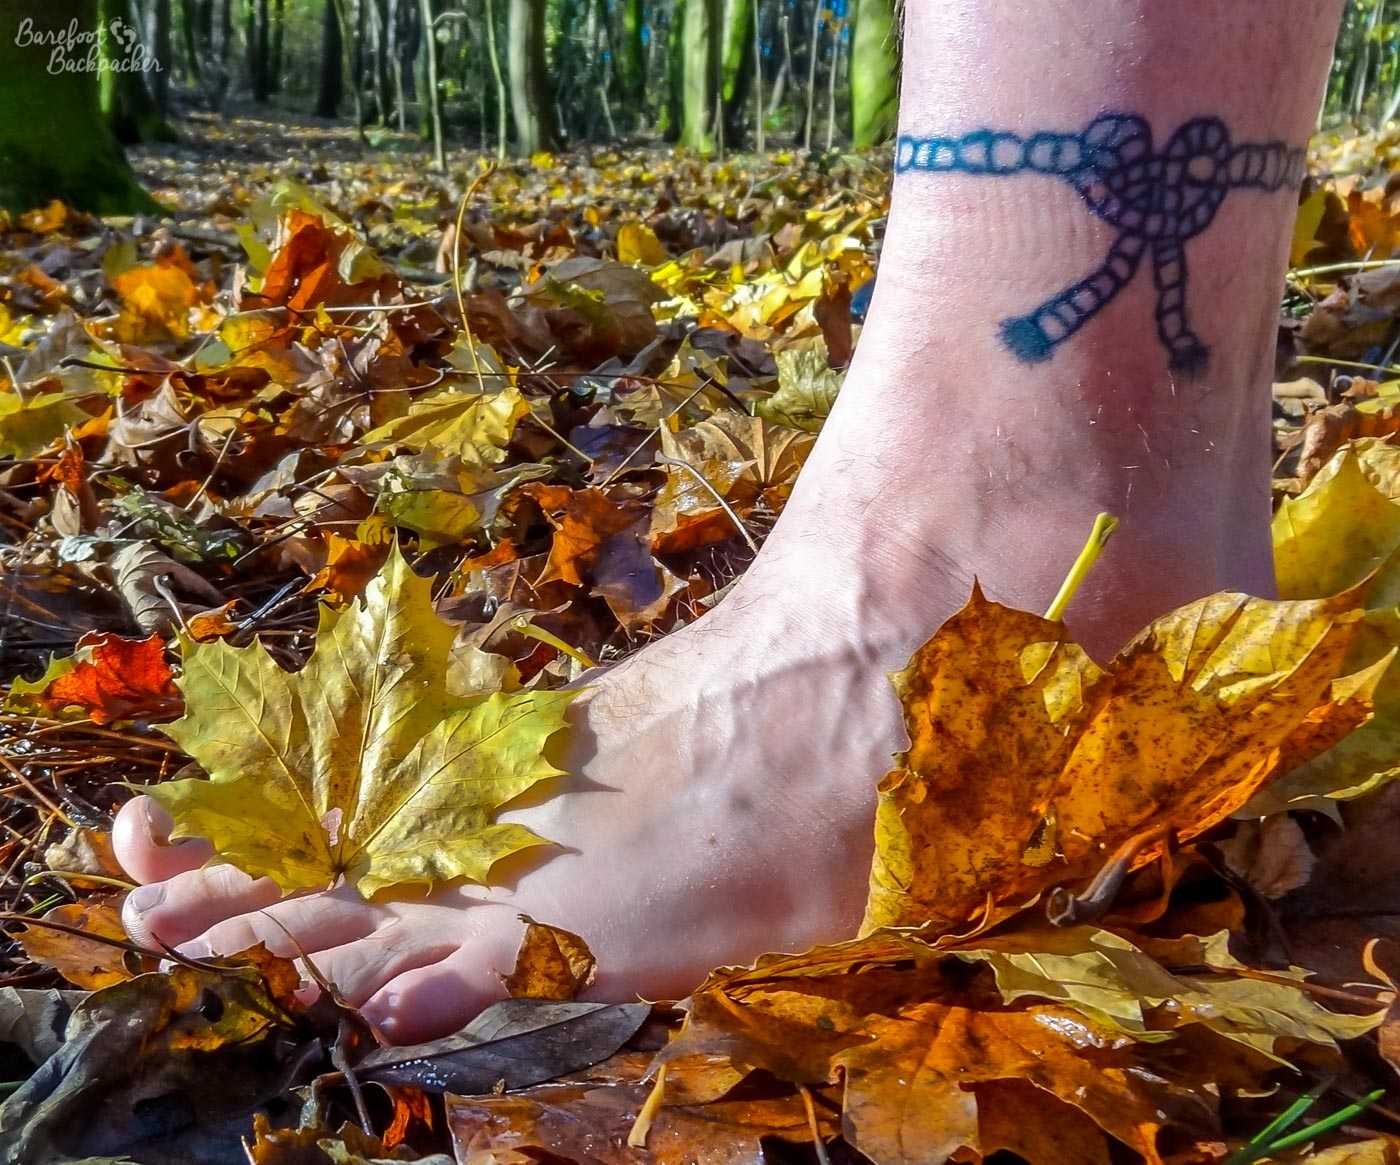 A close-up of a bare foot stepping in orange autumnal leaves on the ground, in a woodland. There are lots of trees in the background. Above the ankle on the foot is a blue-ish tattoo in a rope motif. The knot of the rope isn't technically valid but no-one cares.